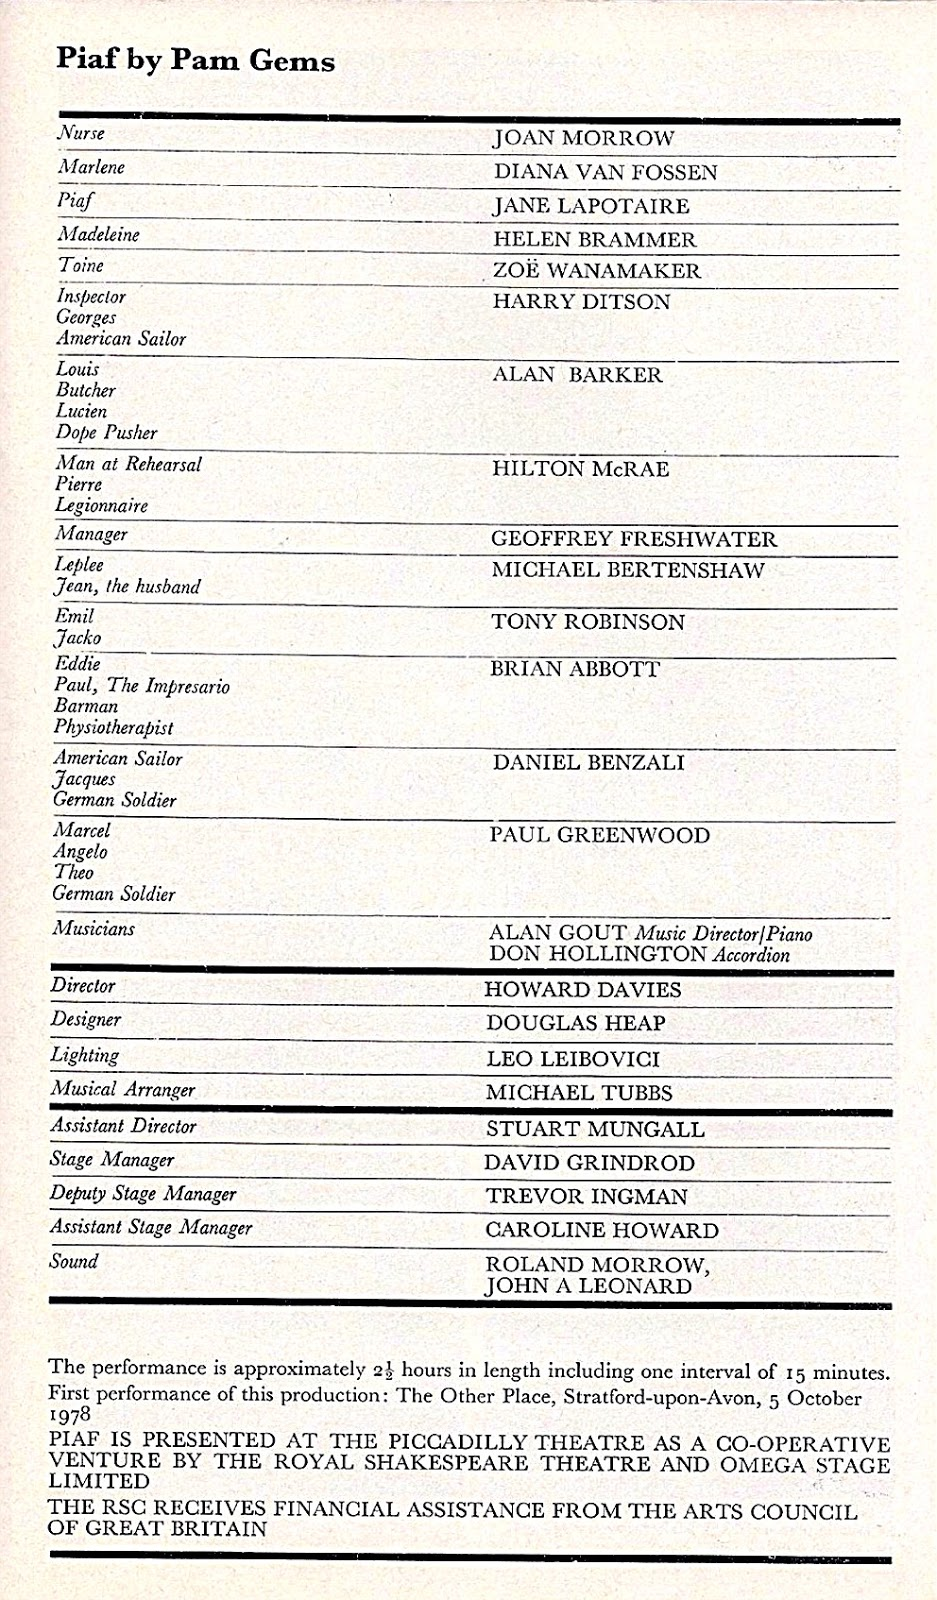 Remembrances of Performances Past: Playbills and Memories from a